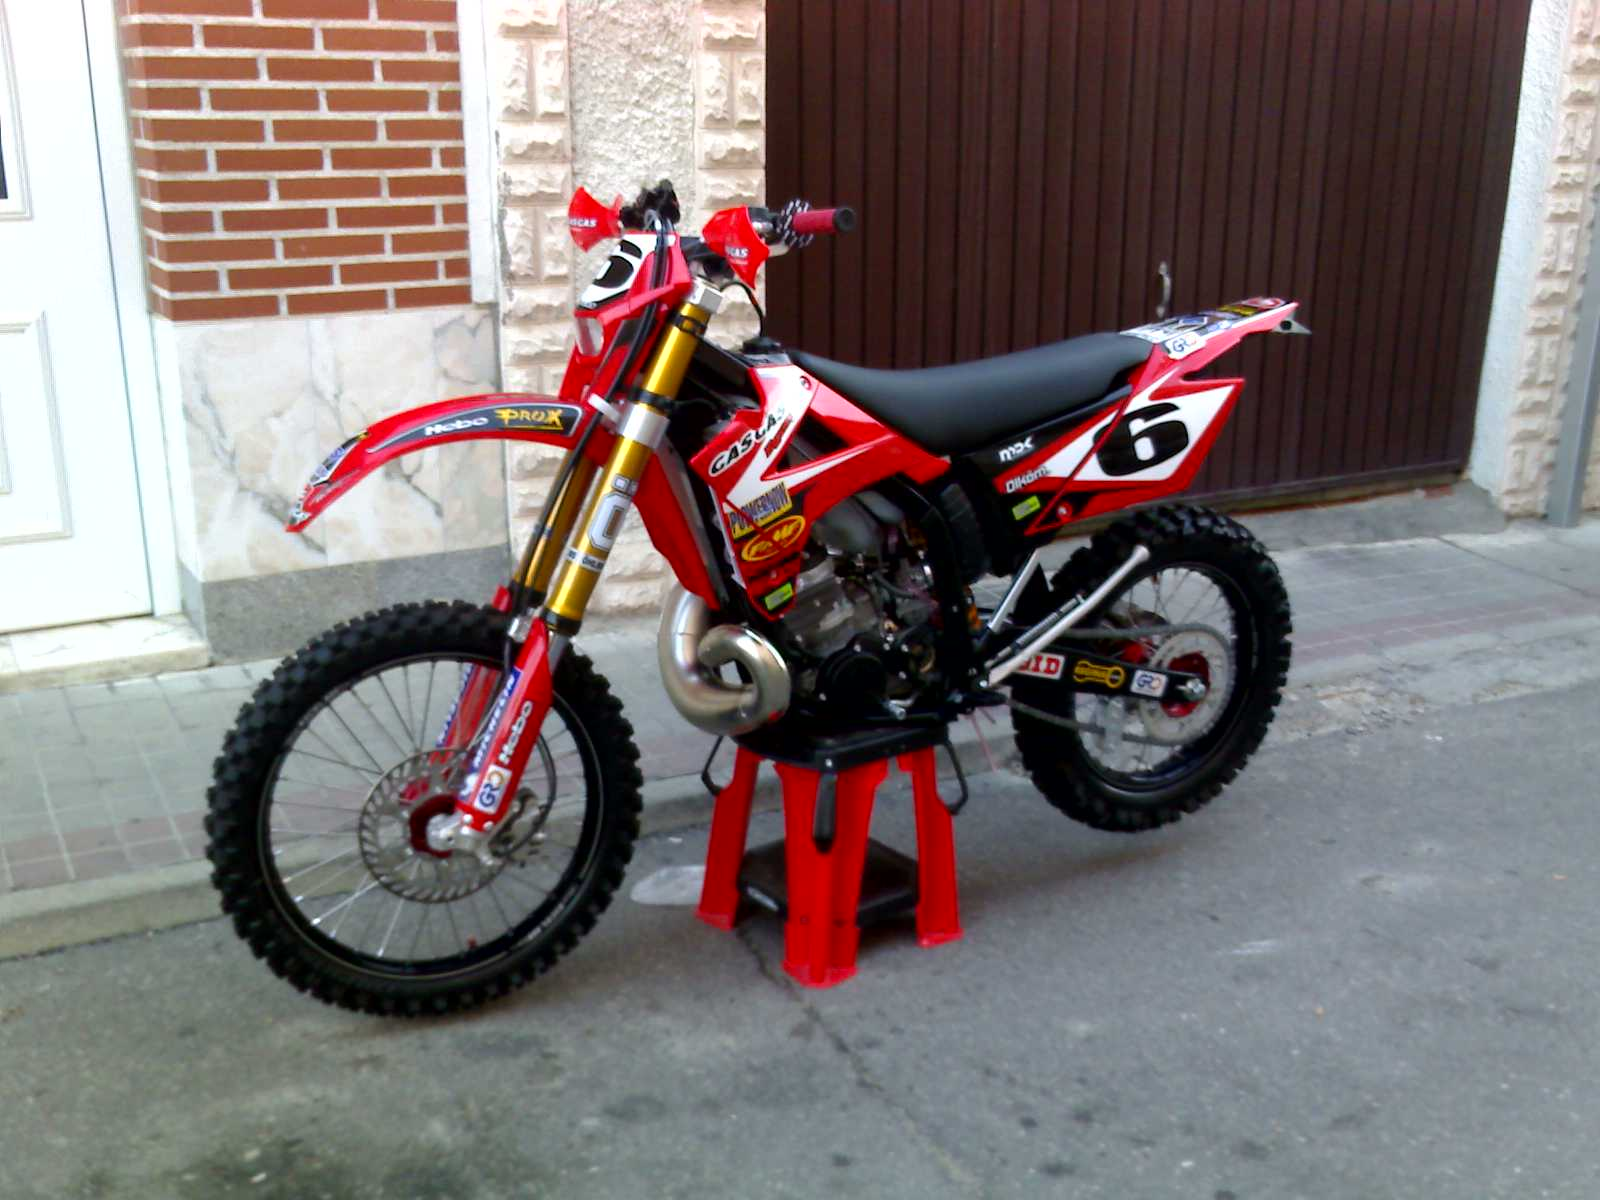 GAS GAS SM 450 images #95857